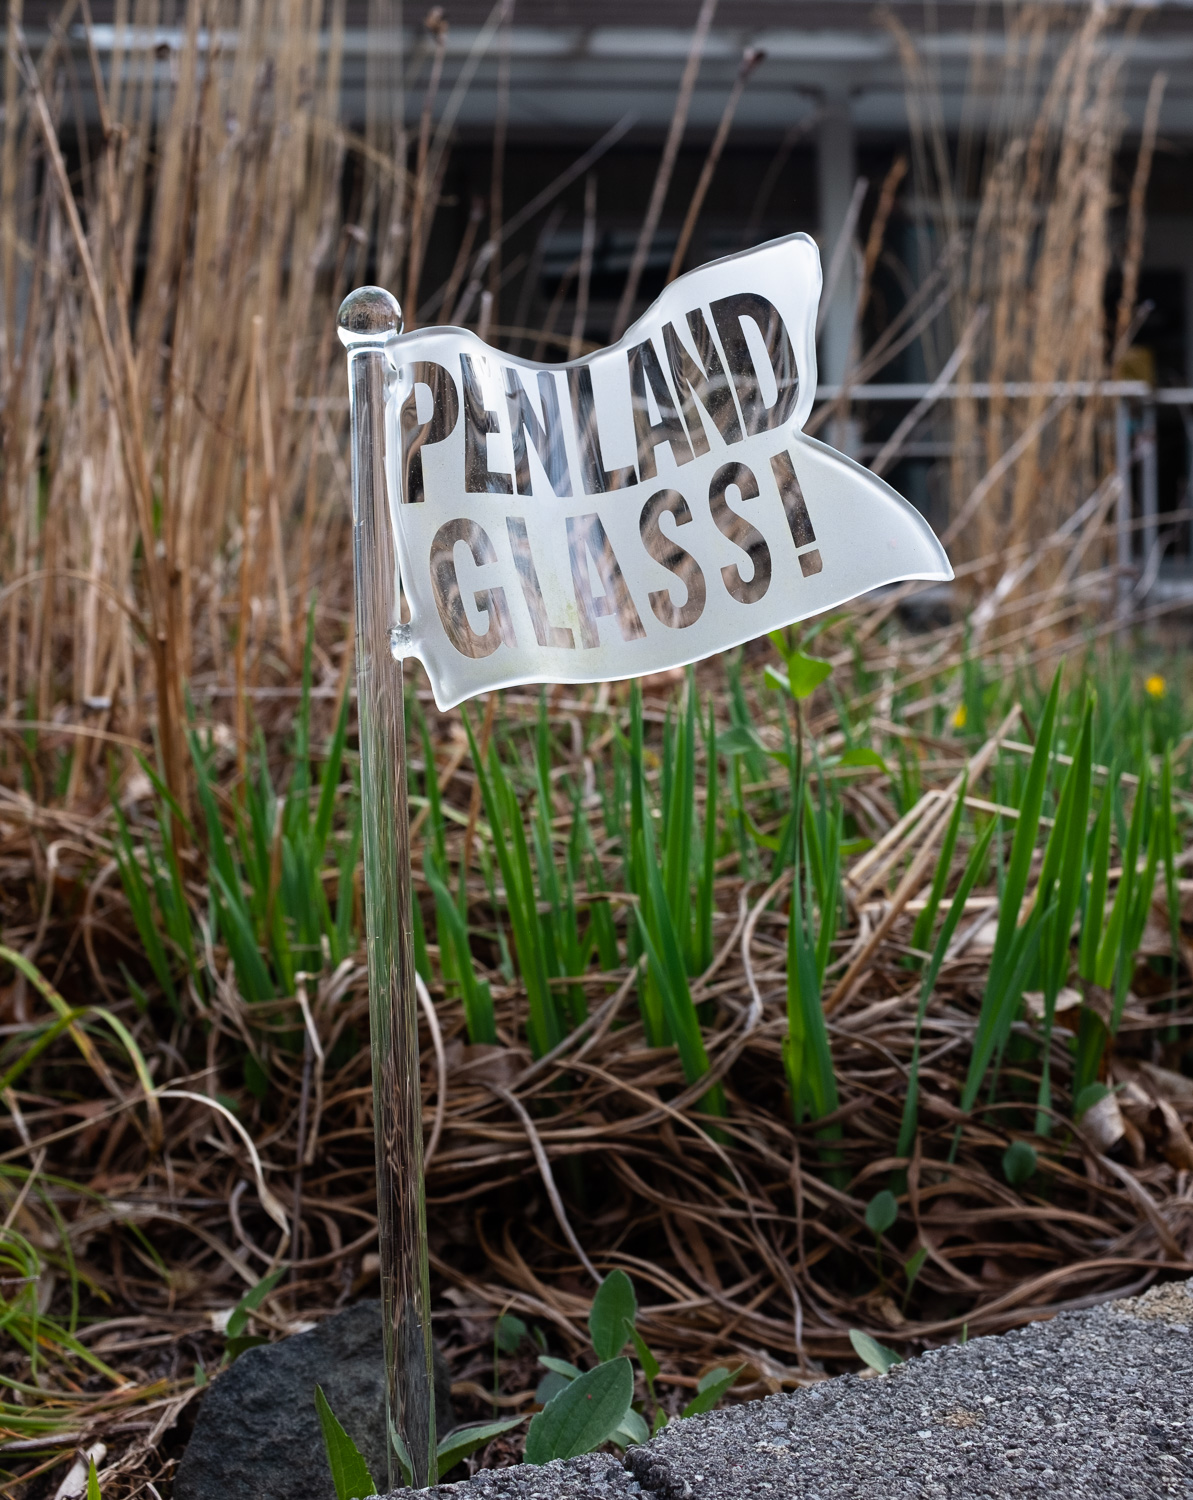 A glass flag outside the Penland glass studio.